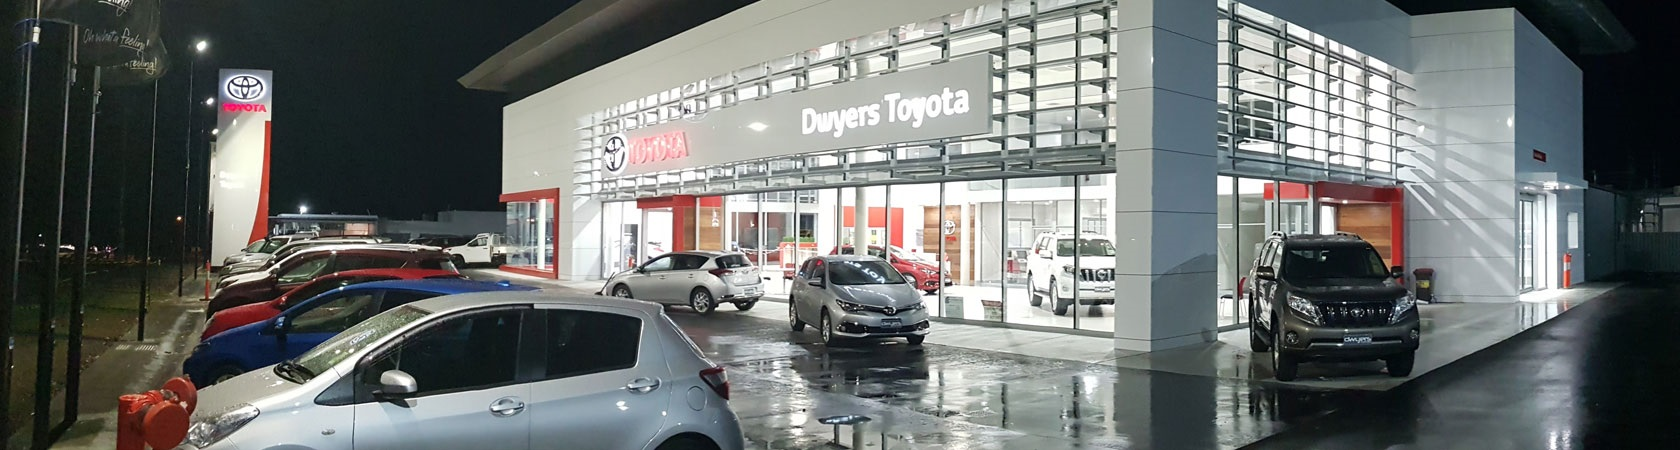 Careers at Dwyers Toyota